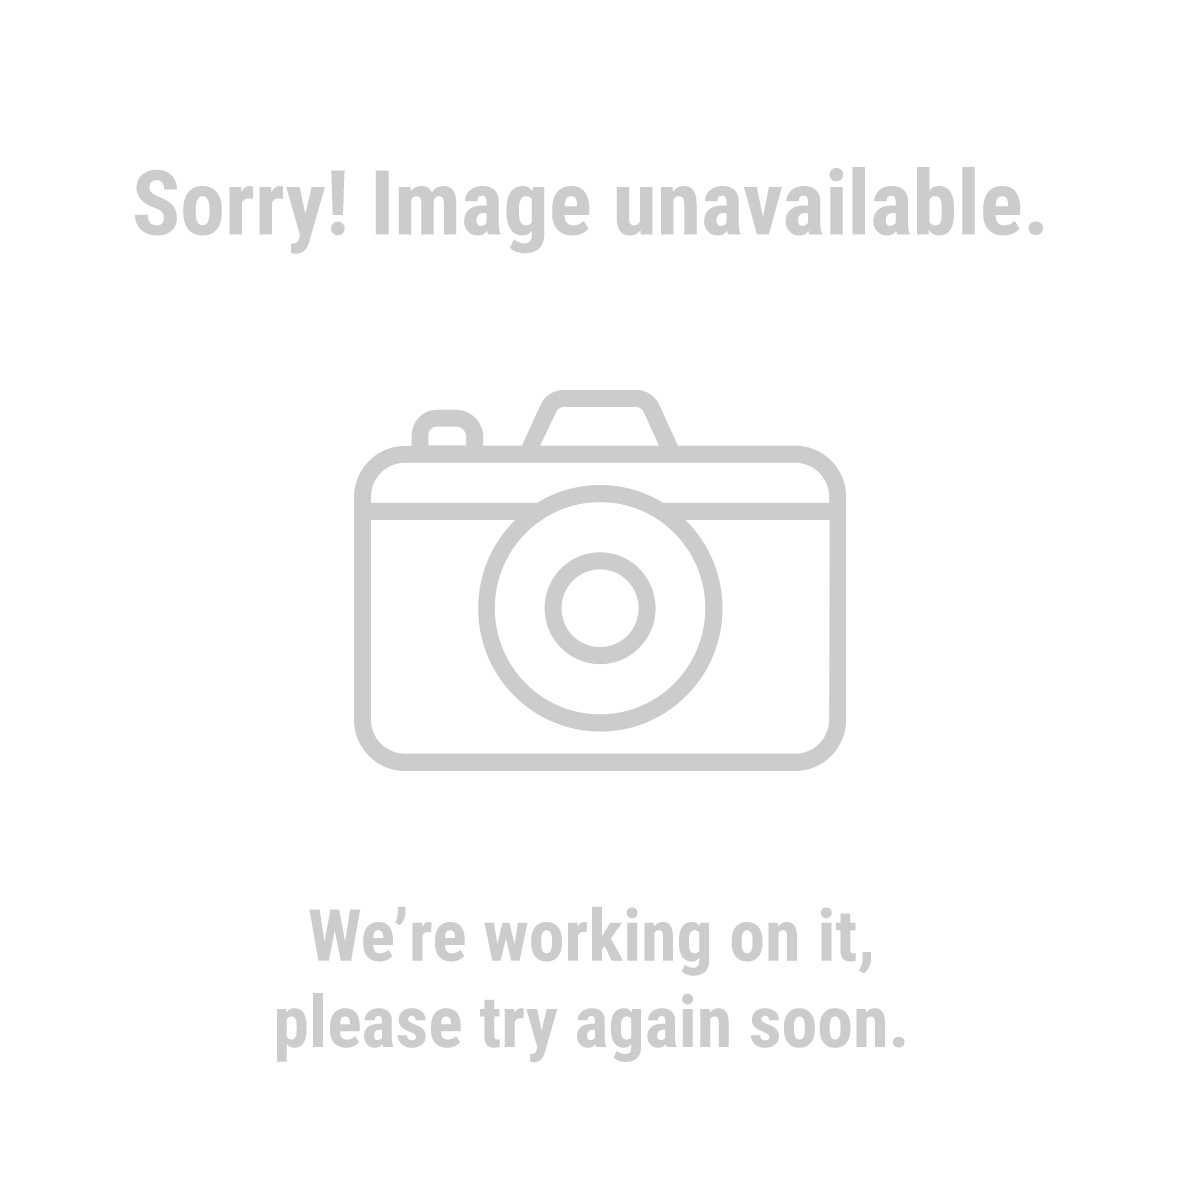 Franklin 63051 Heavy Duty Portable Scaffold